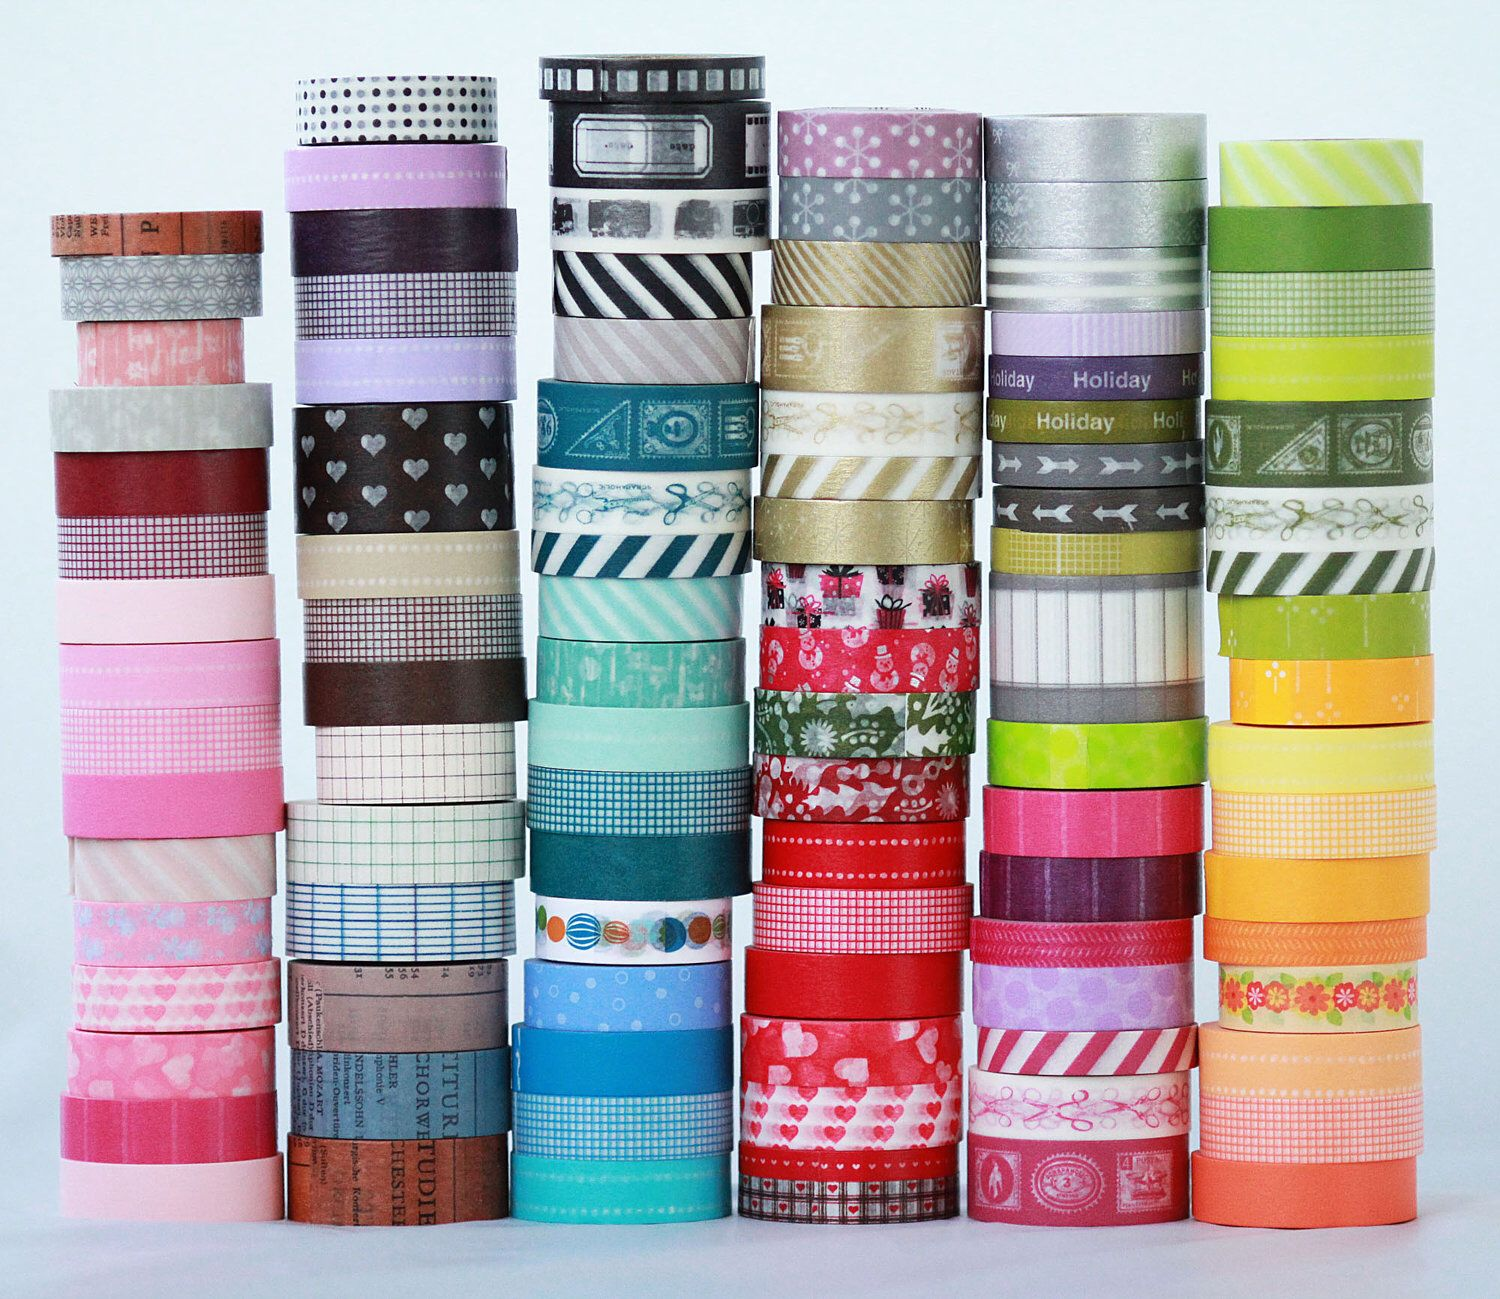 40 wooden spools japanese washi tape choose the colors or